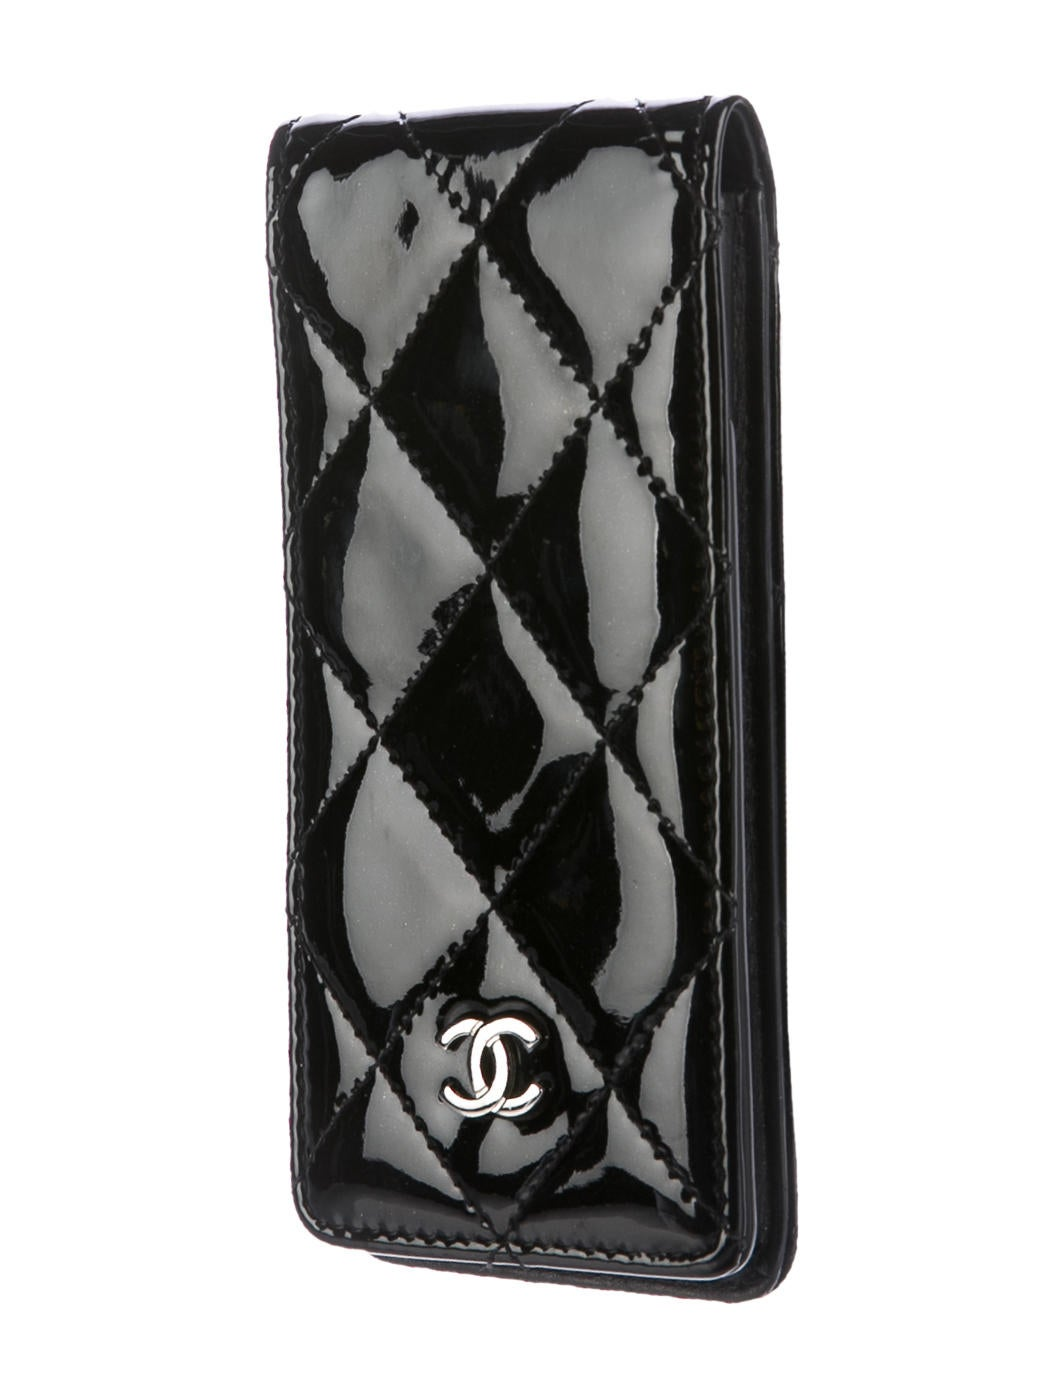 chanel iphone case chanel quilted patent iphone accessories 10355